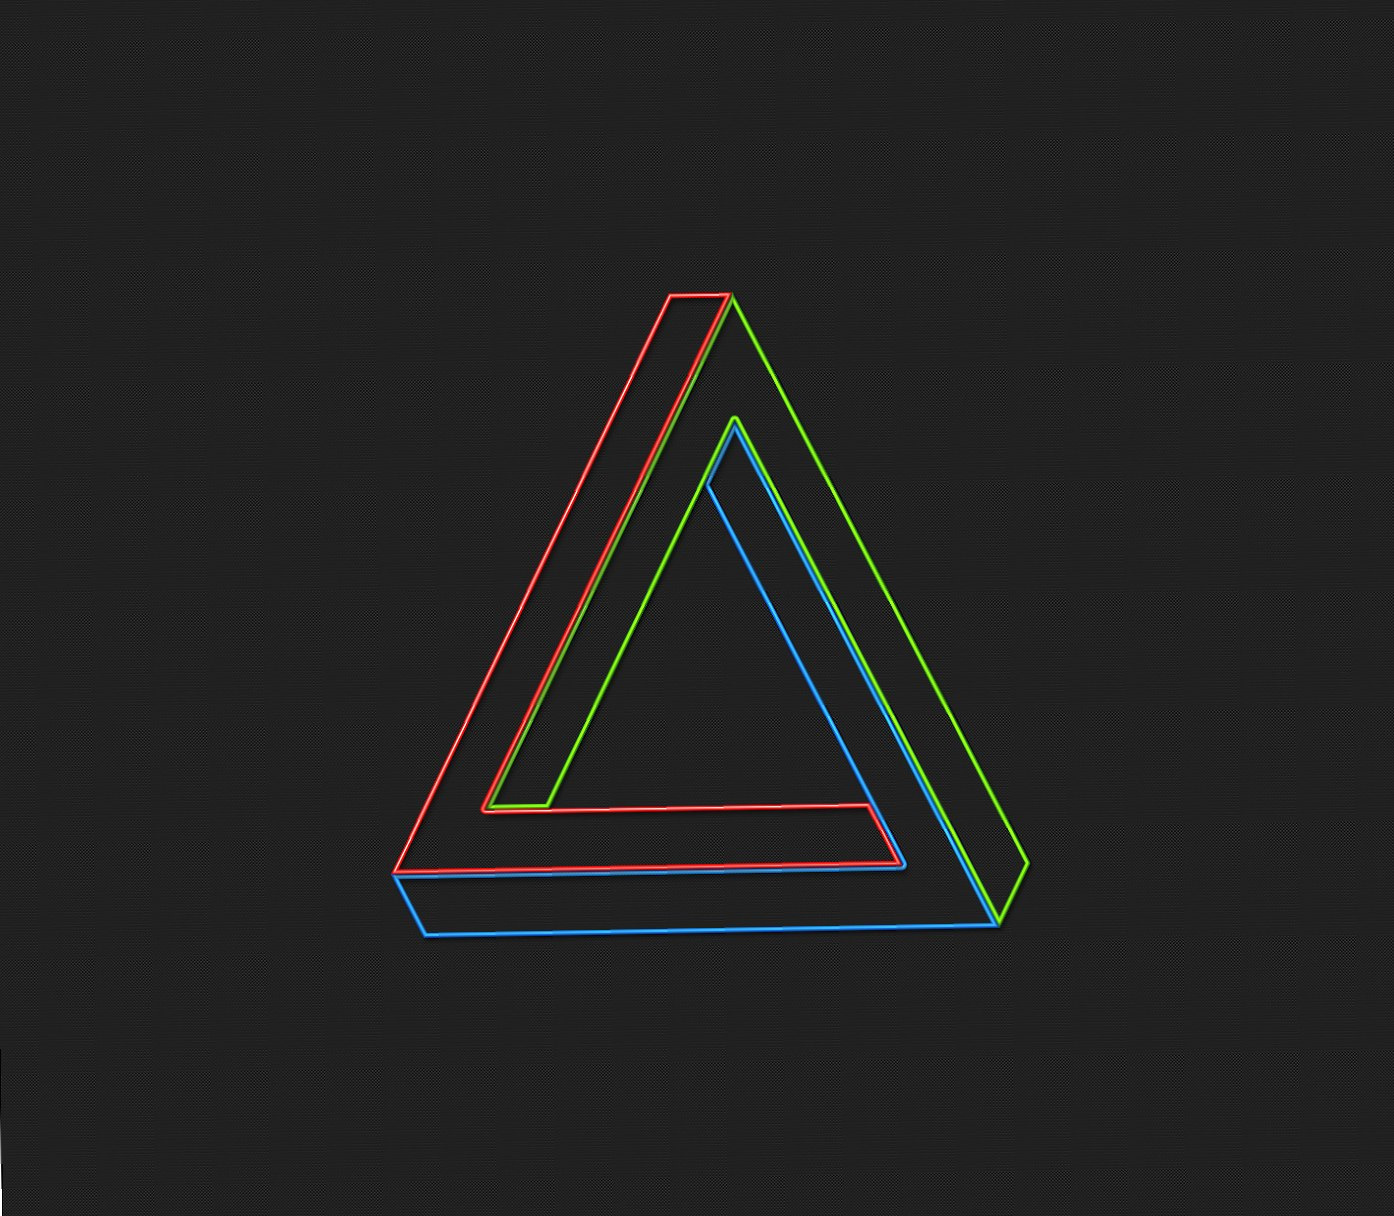 Color triangle wallpapers HD quality